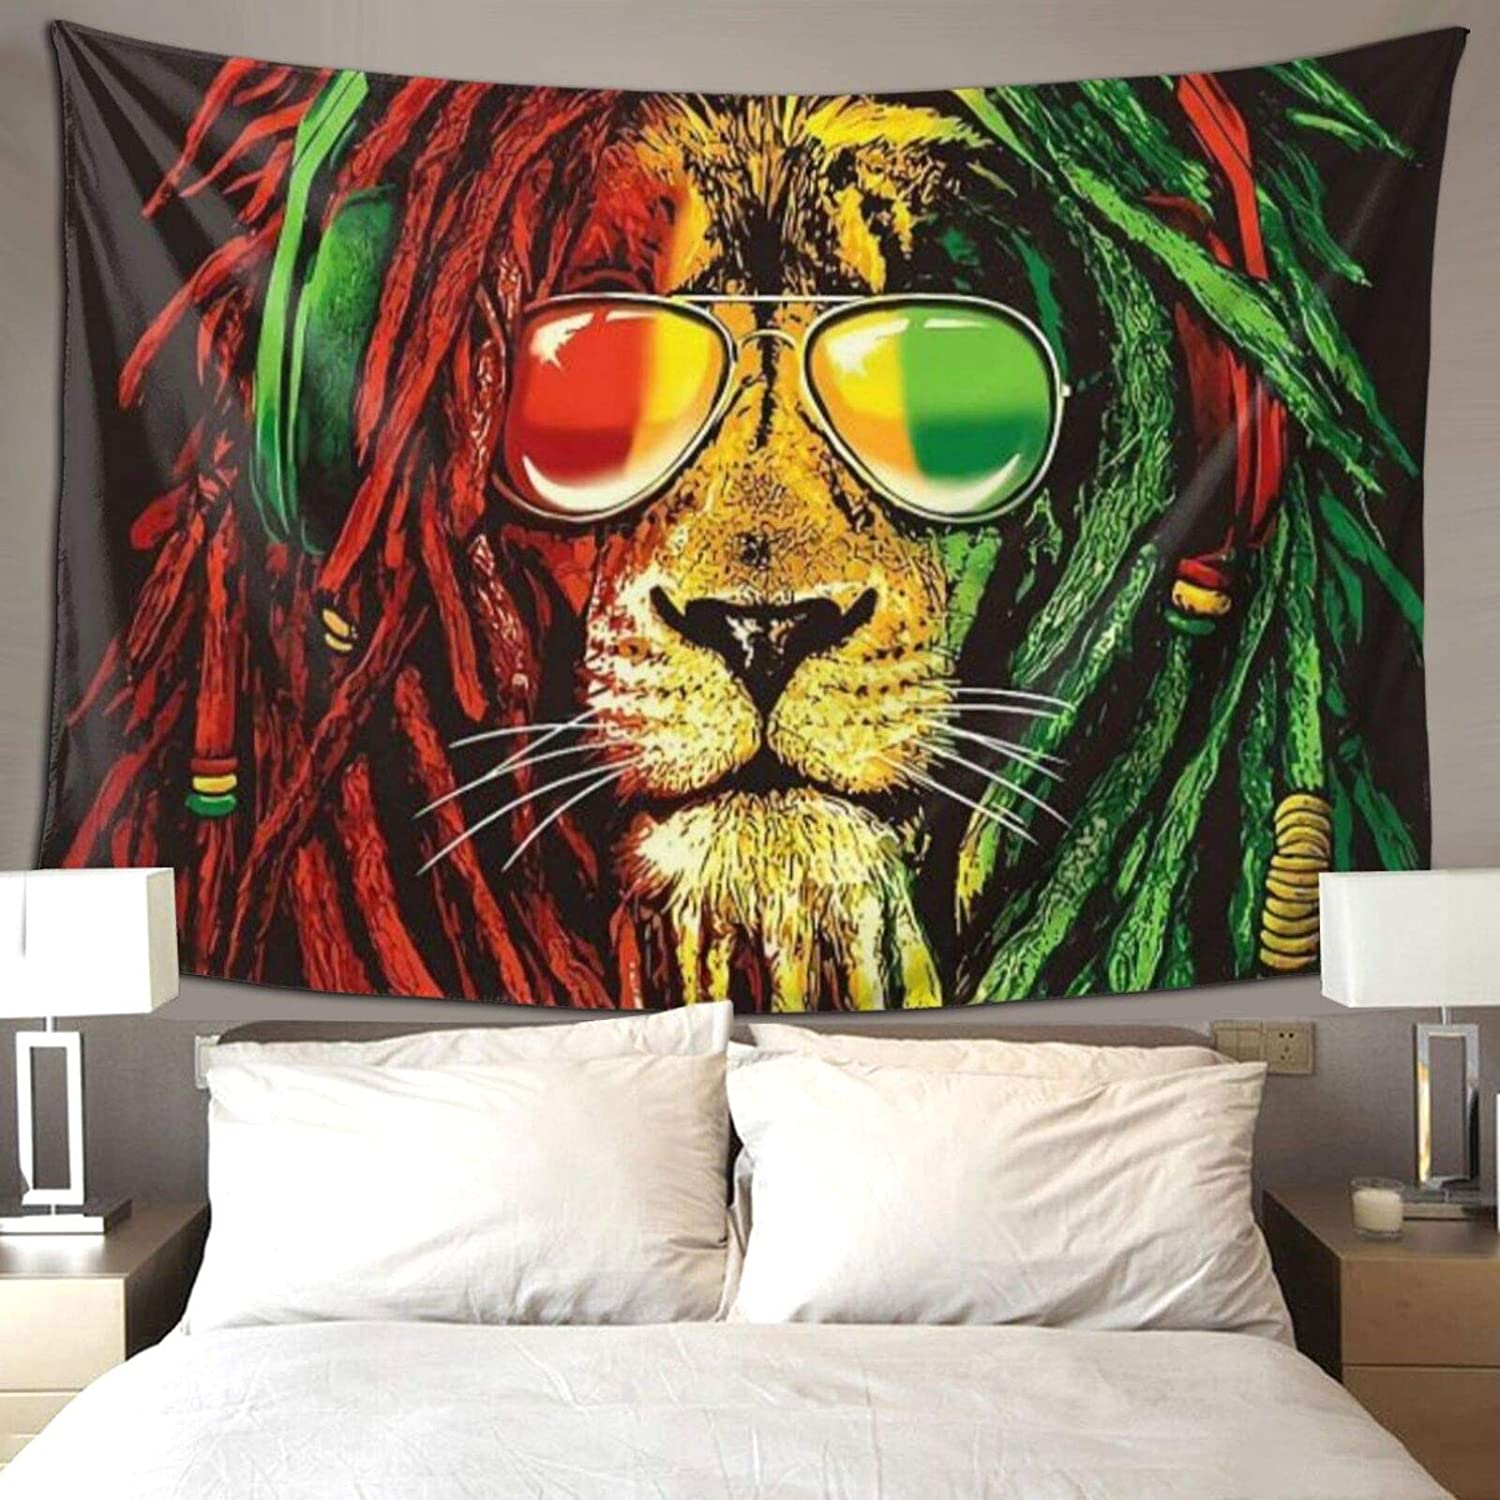 Hippie Art Tapestry Wall Hanging Tapestries Reggae Rasta Lion Wall Blanket Wall Hanging Home Decor Tablecloths for Bedroom Living Room Dorm Restaurant, 60X90 inches